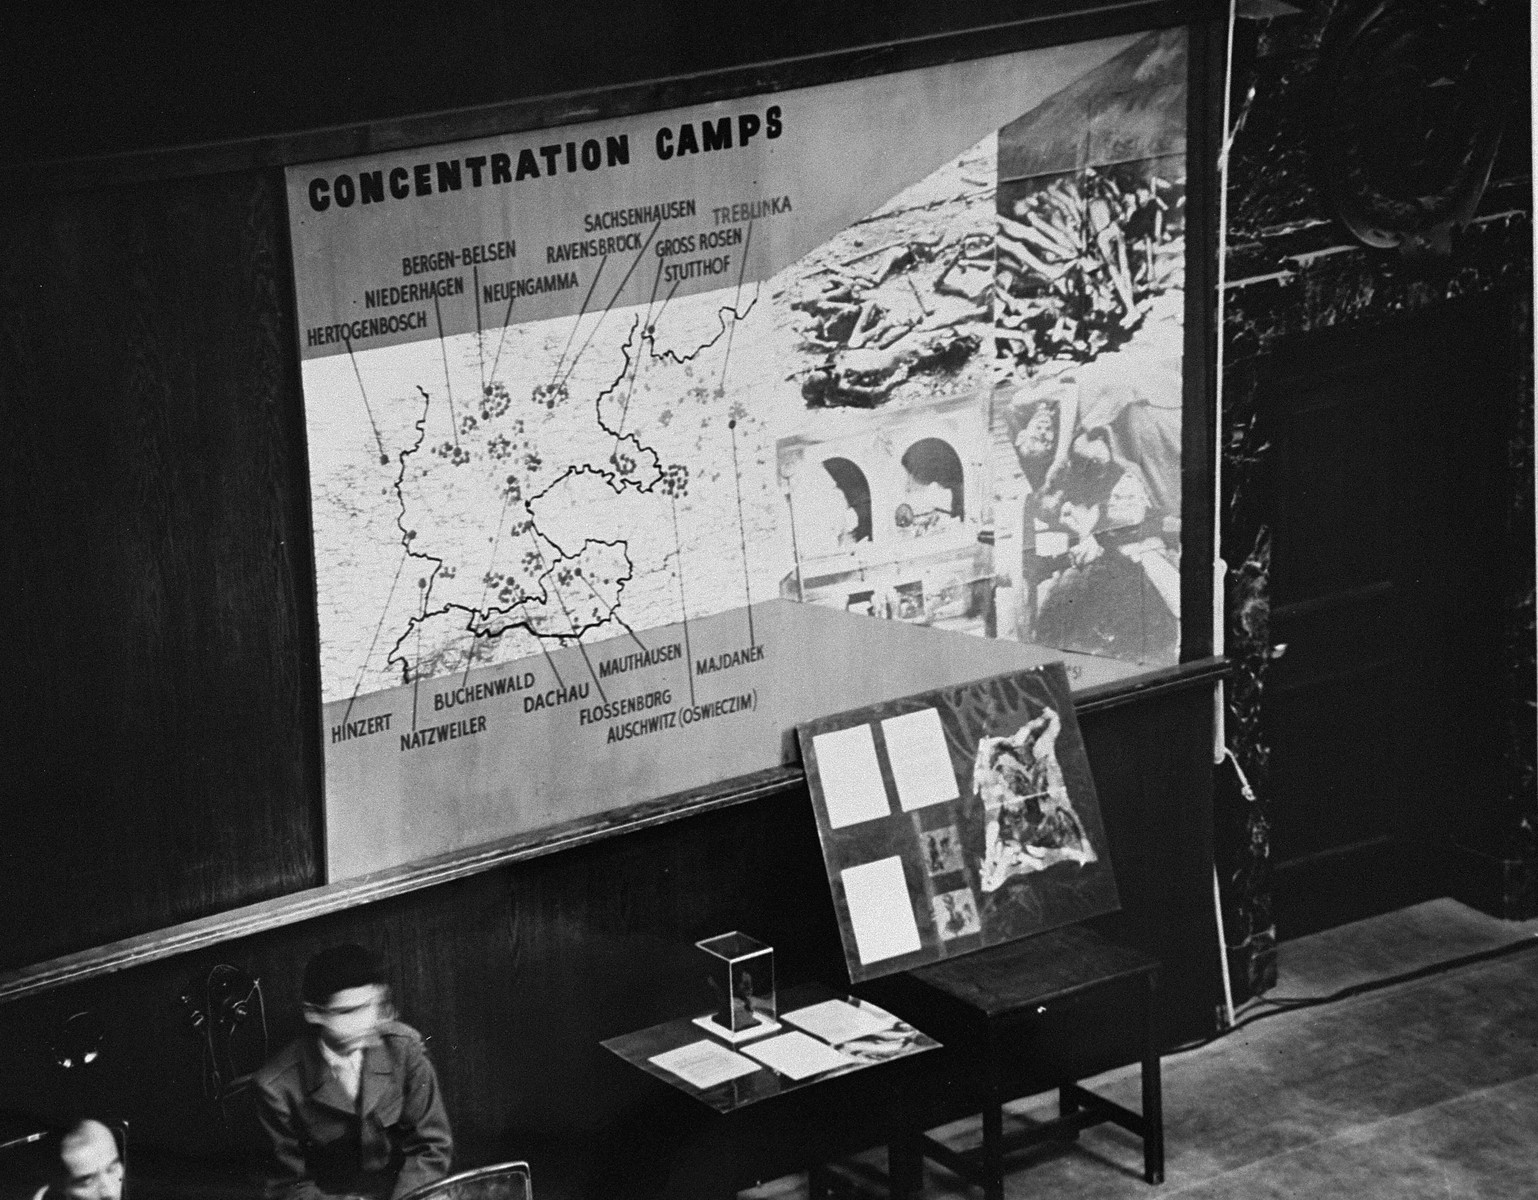 Photographs, artifacts, and a map presented as evidence at the International Military Tribunal trial of war criminals at Nuremberg.